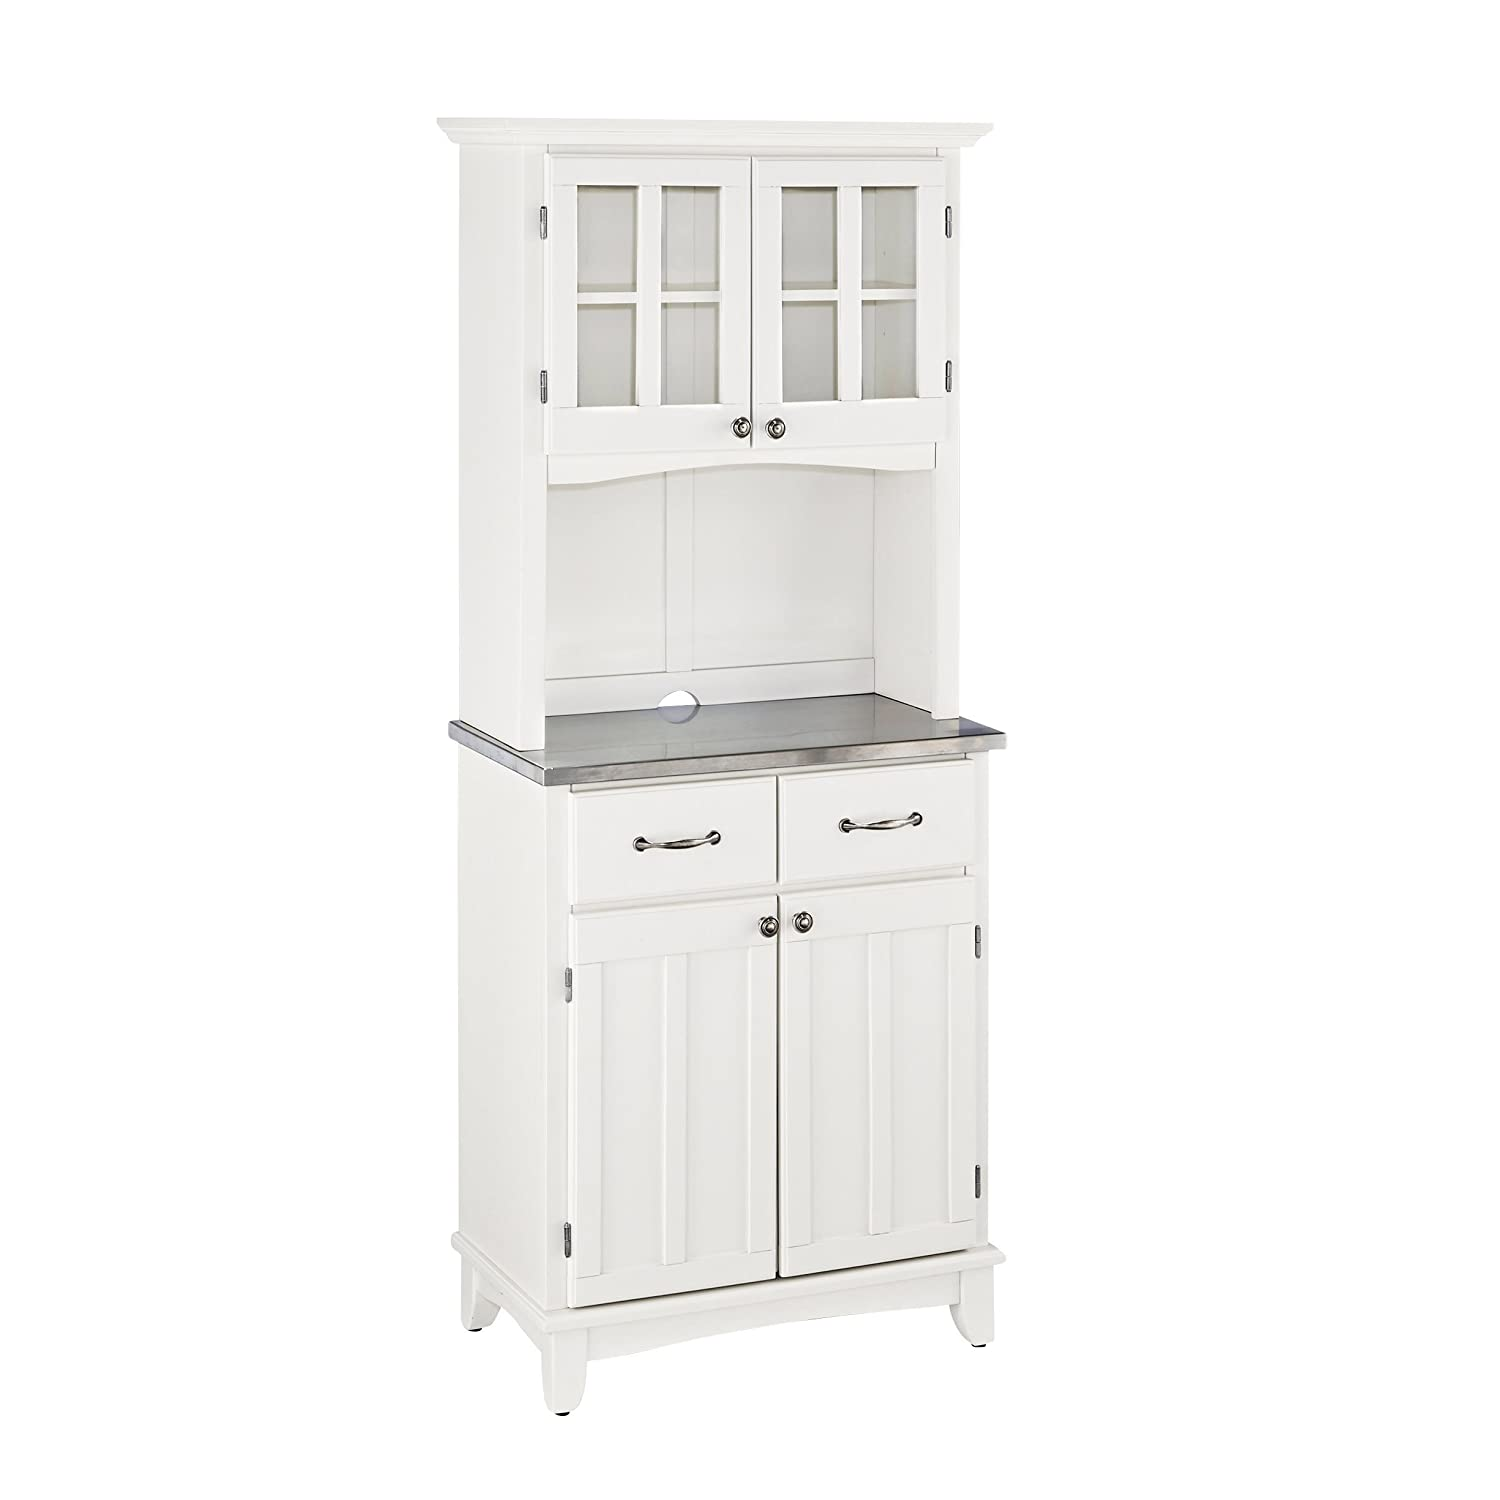 Home Styles 5001-0023-22 Buffet of Buffet 5001 Series Stainless Top Buffet Server and Hutch, White, 29-1/4-Inch